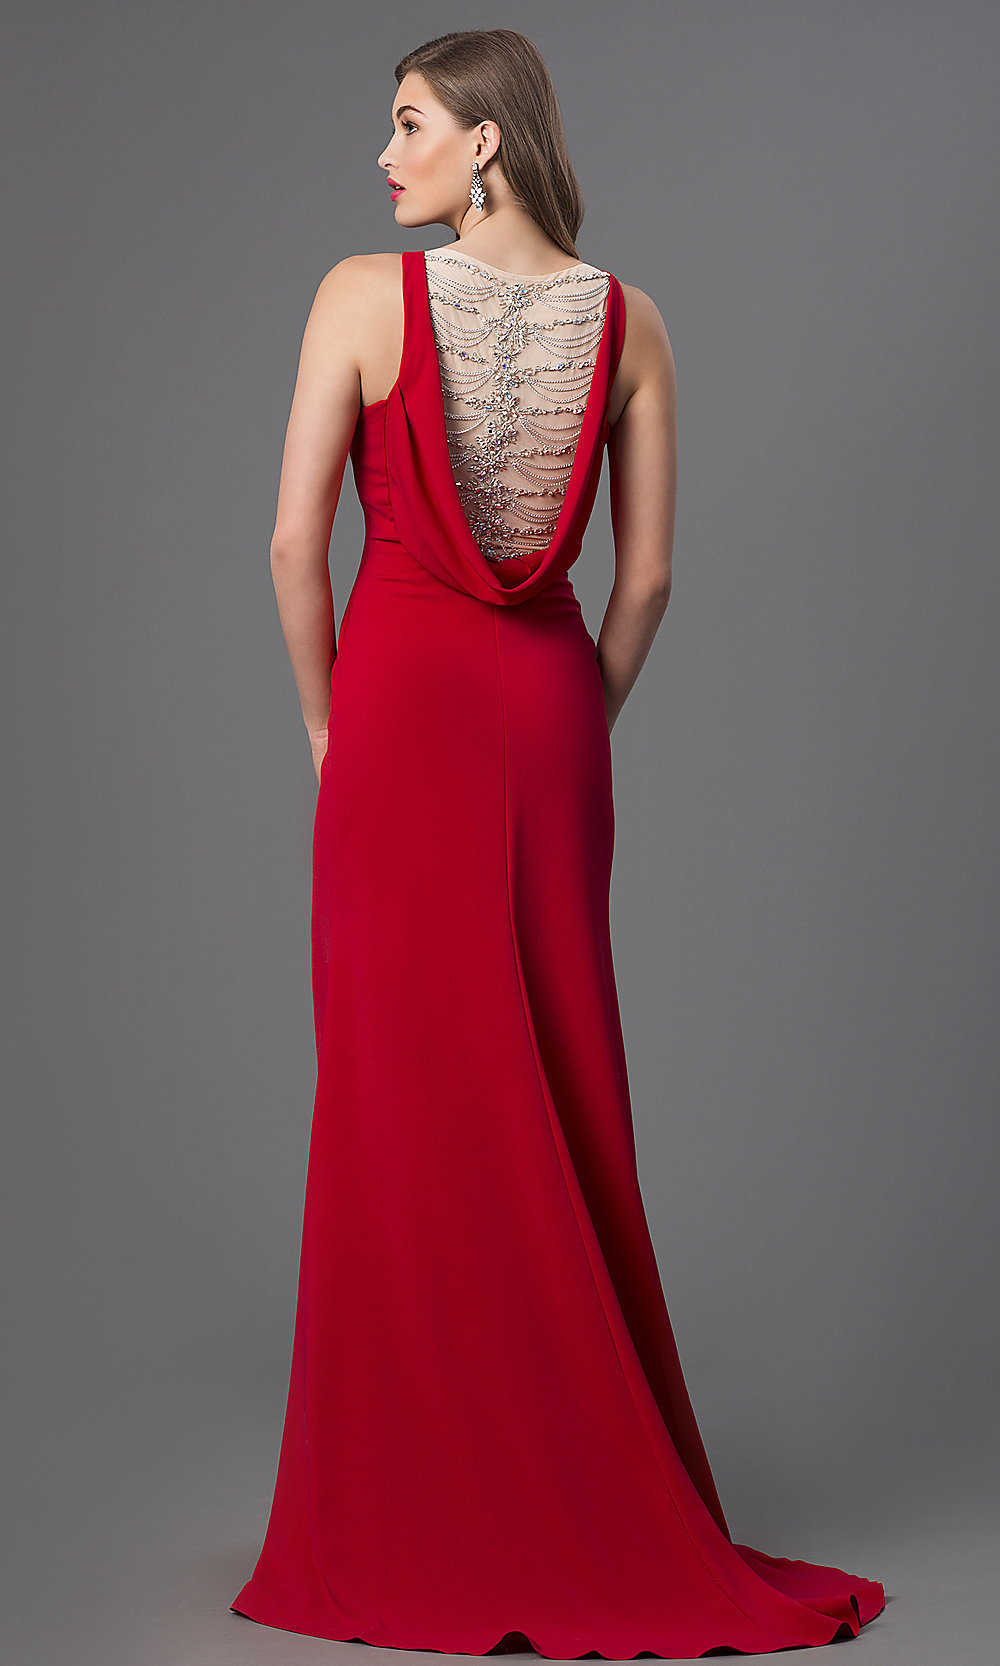 Terani Floor Length Red Sleeveless Dress with DrapeRed Dresses